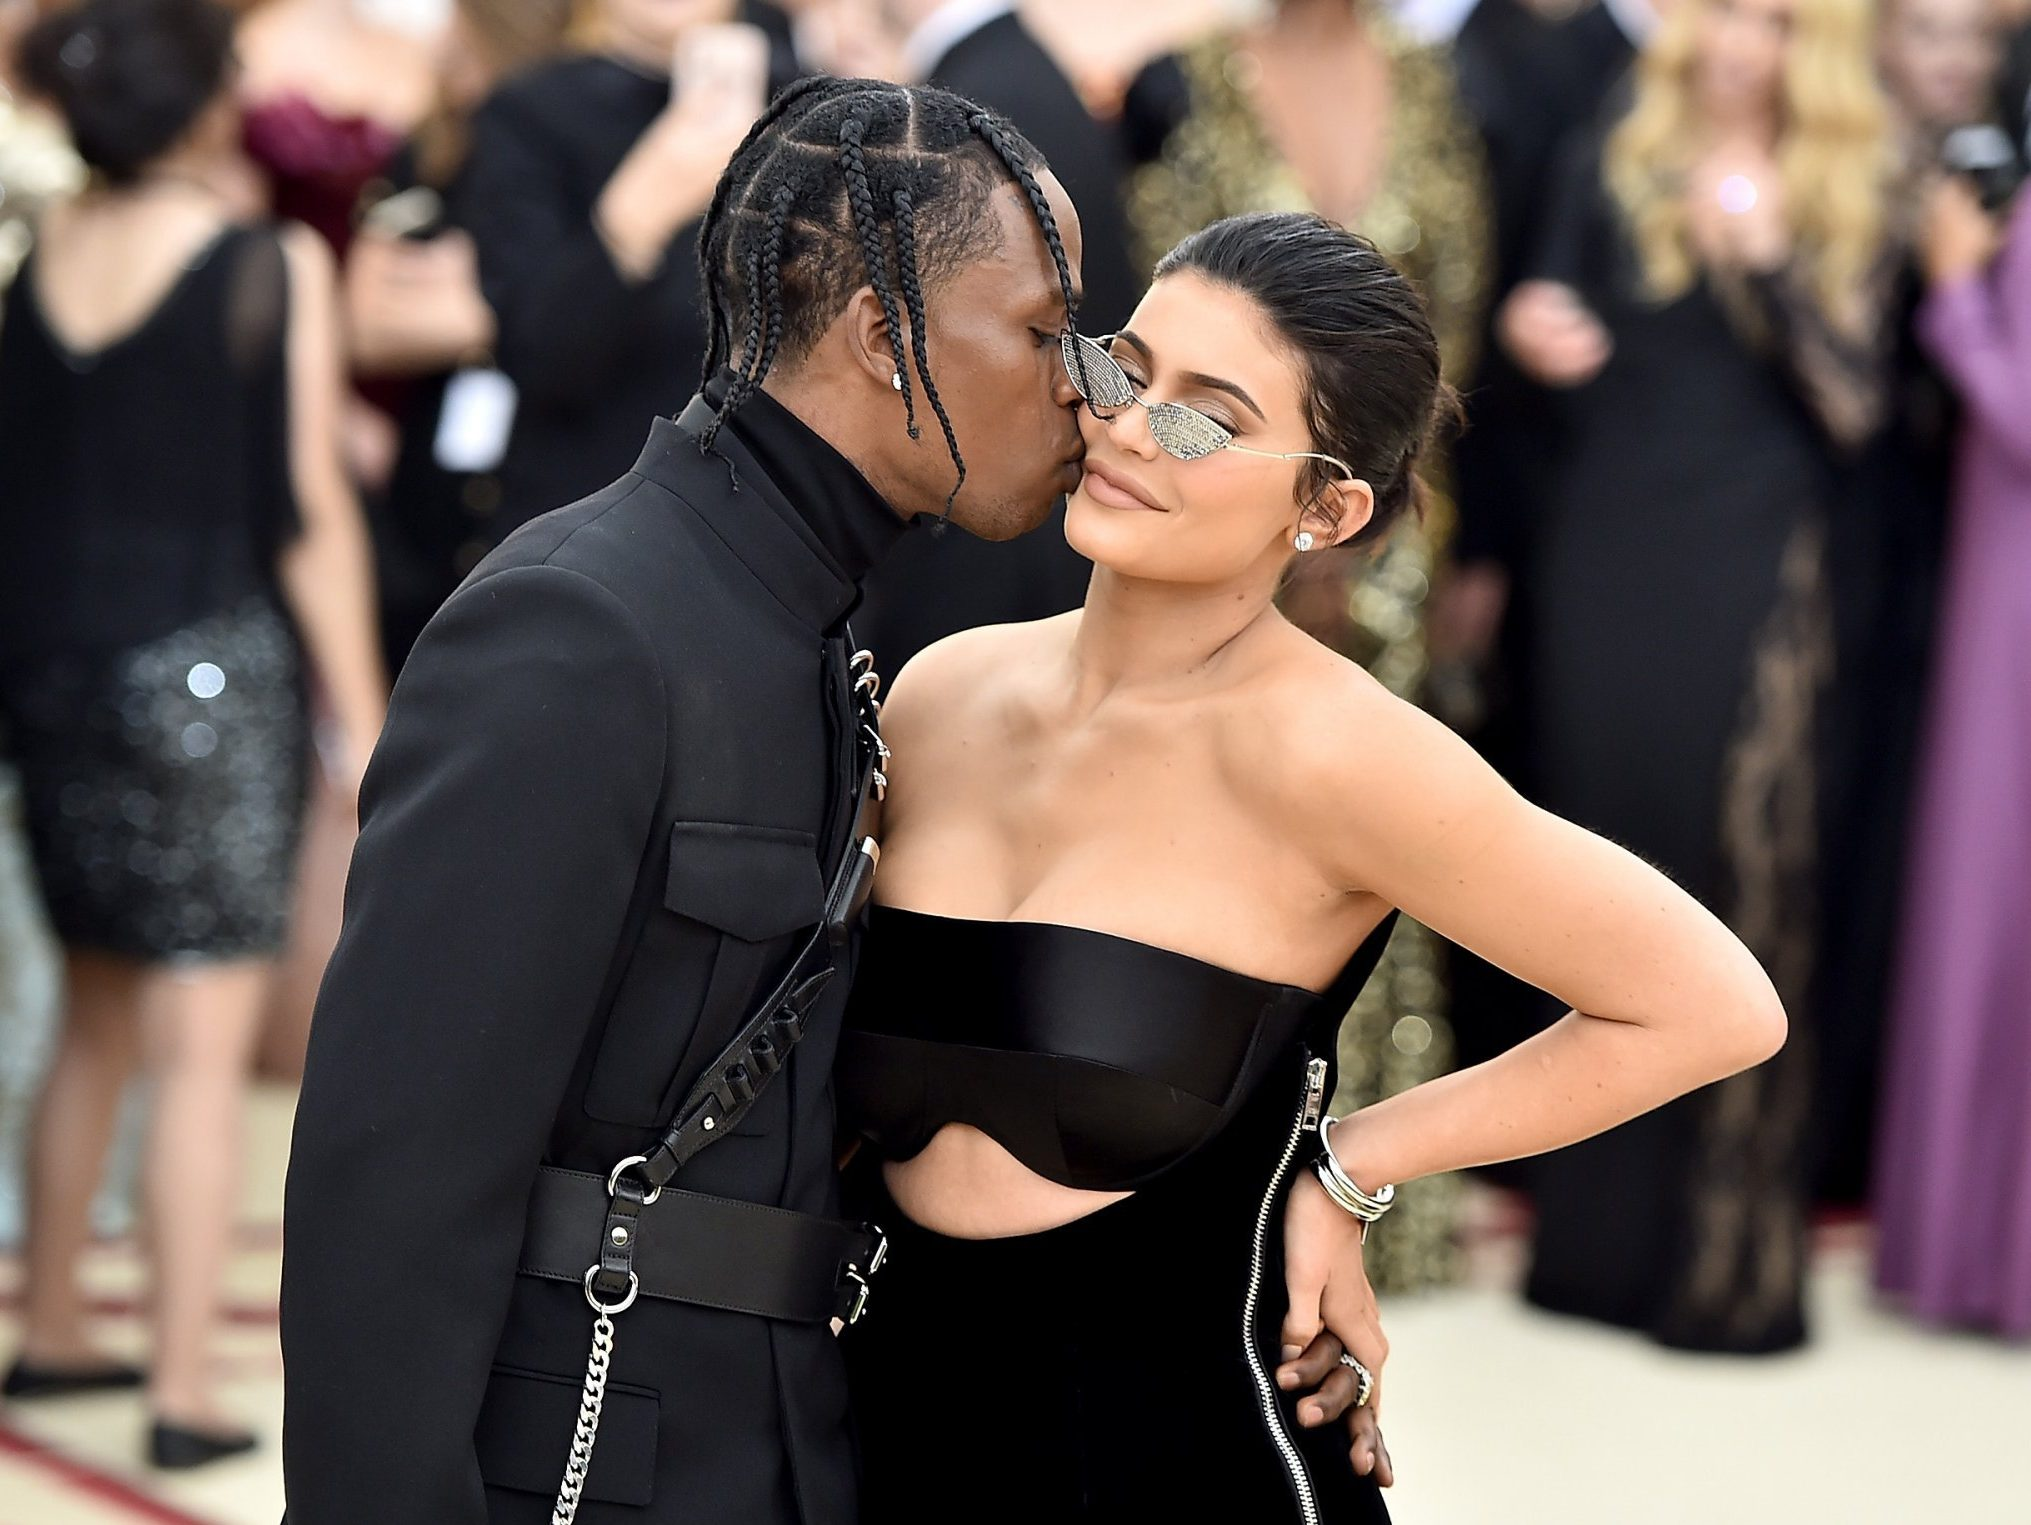 Travis Scott gets thirsty over Kylie Jenner's lingerie picture